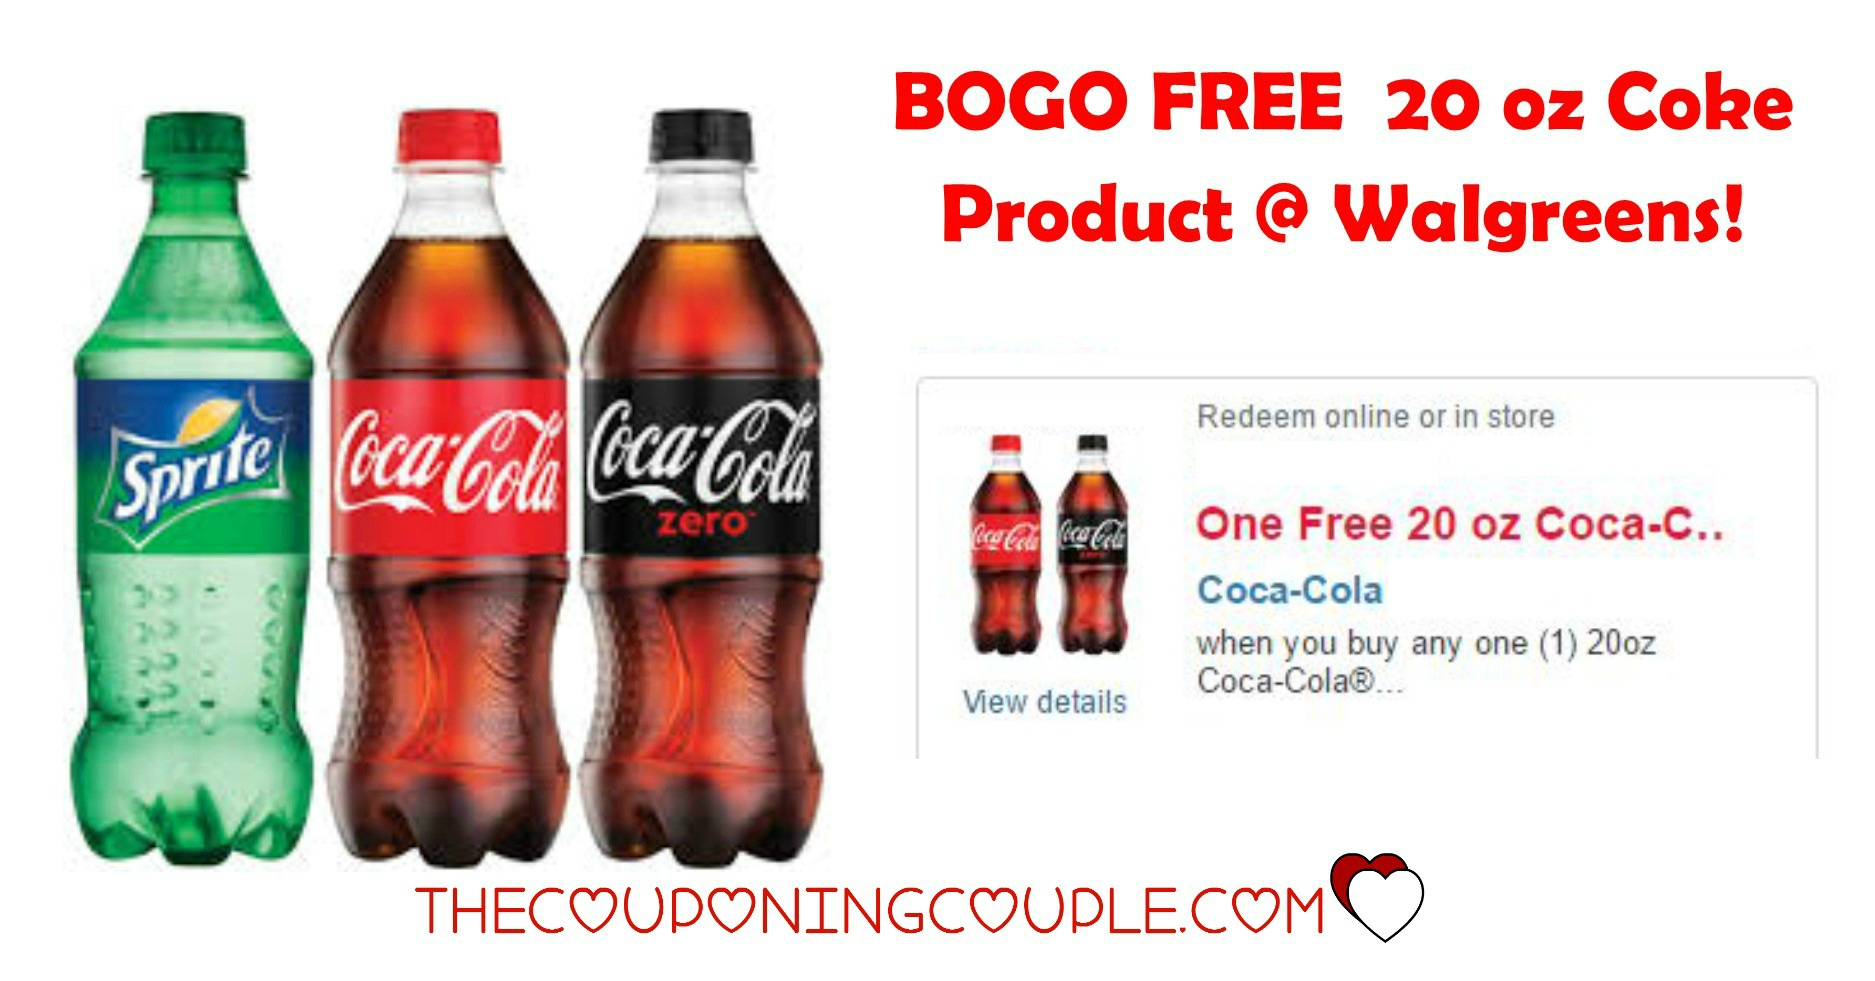 Bogo Free 20 Oz Coke Ecoupon @ Walgreens! Through 8/3! - Free Printable Coupons For Coca Cola Products